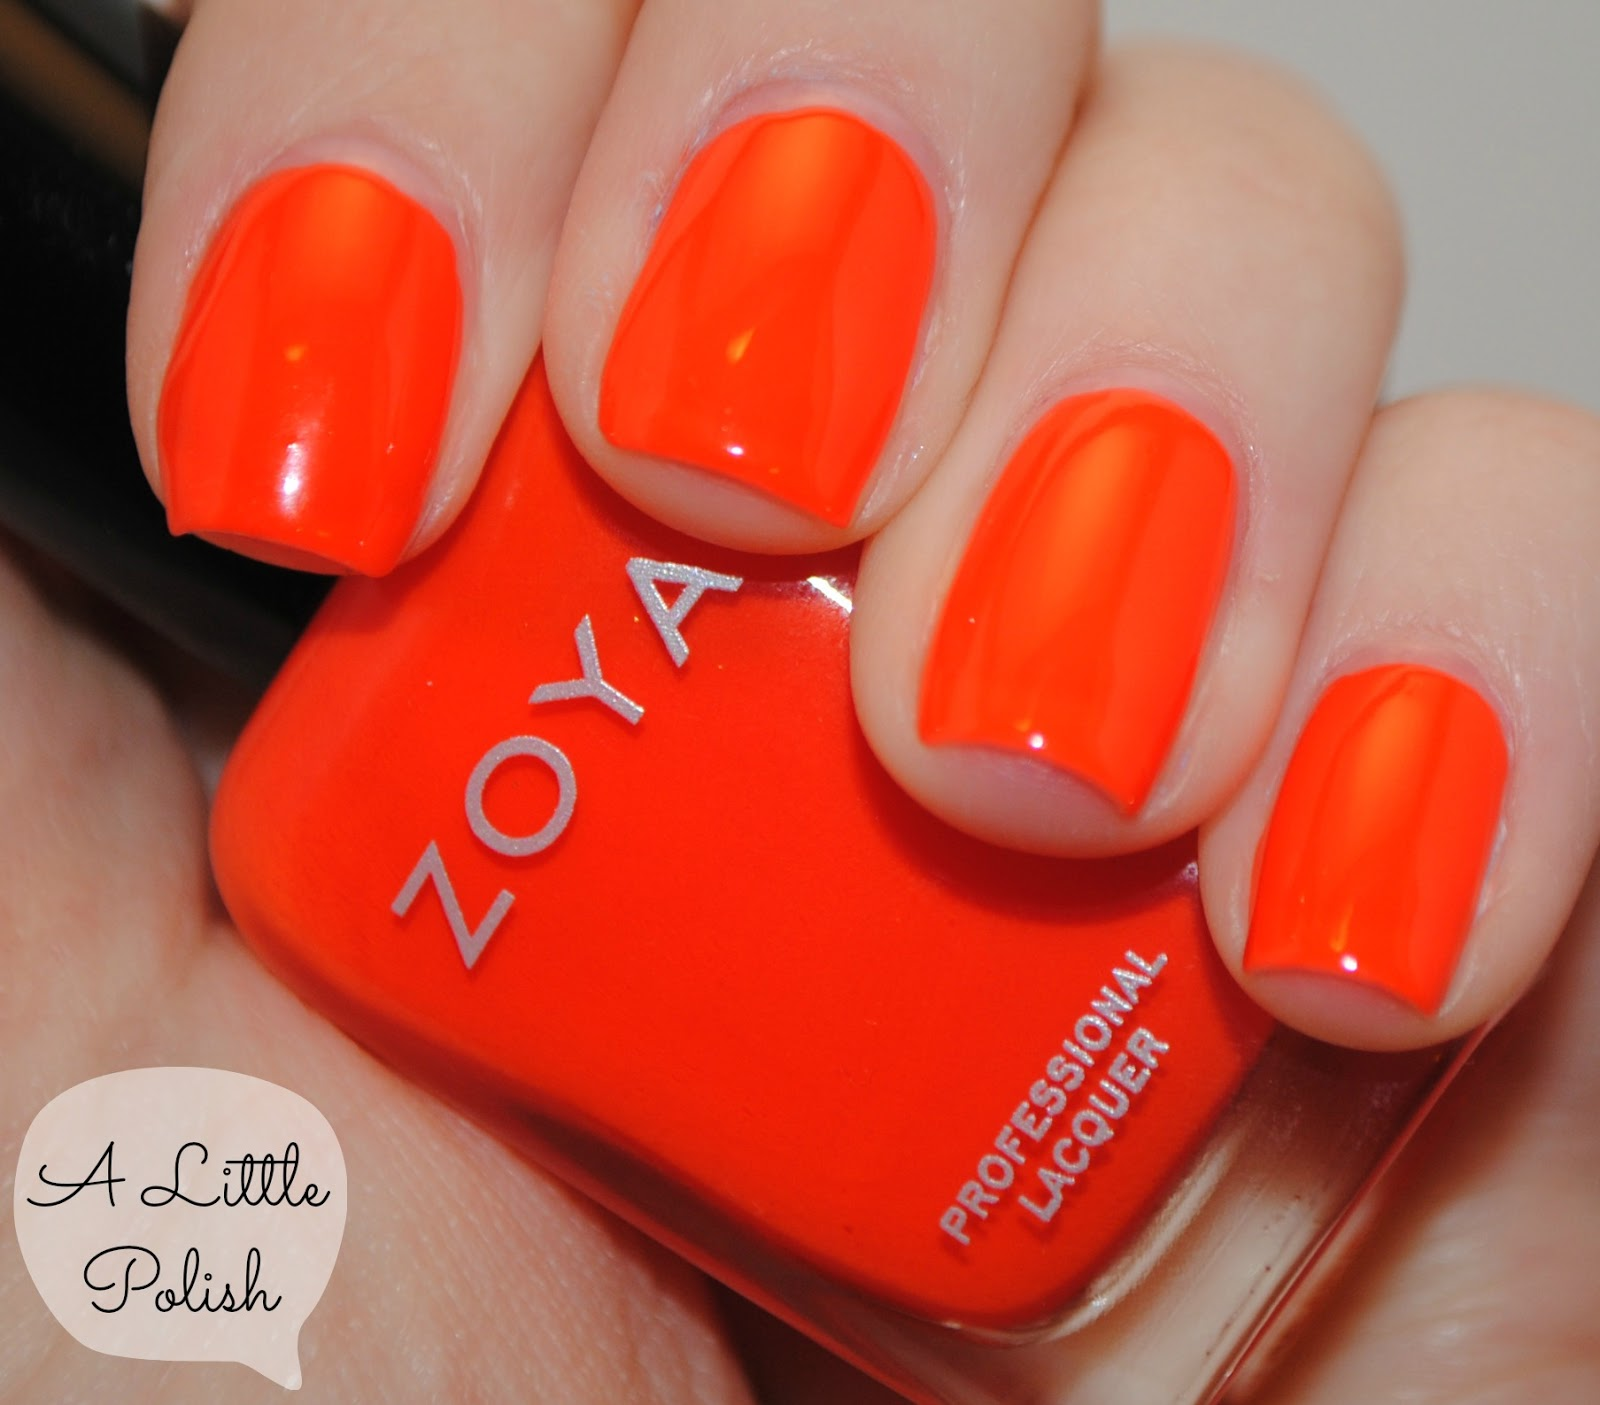 A Little Polish: Zoya - Paz